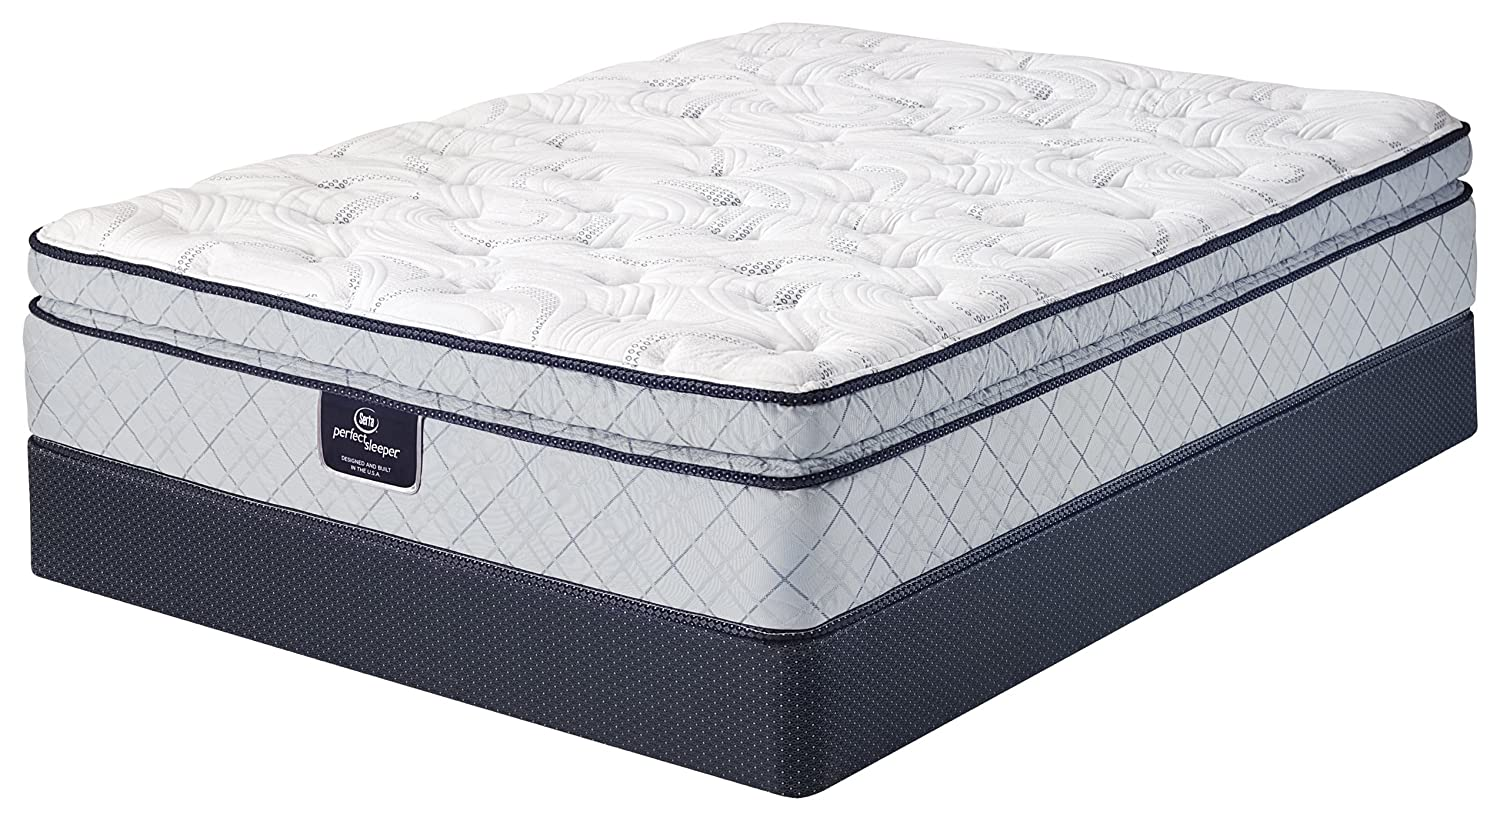 Serta Perfect Sleeper Super Pillow Top Mattress, Cool Gel Foam, Innerspring